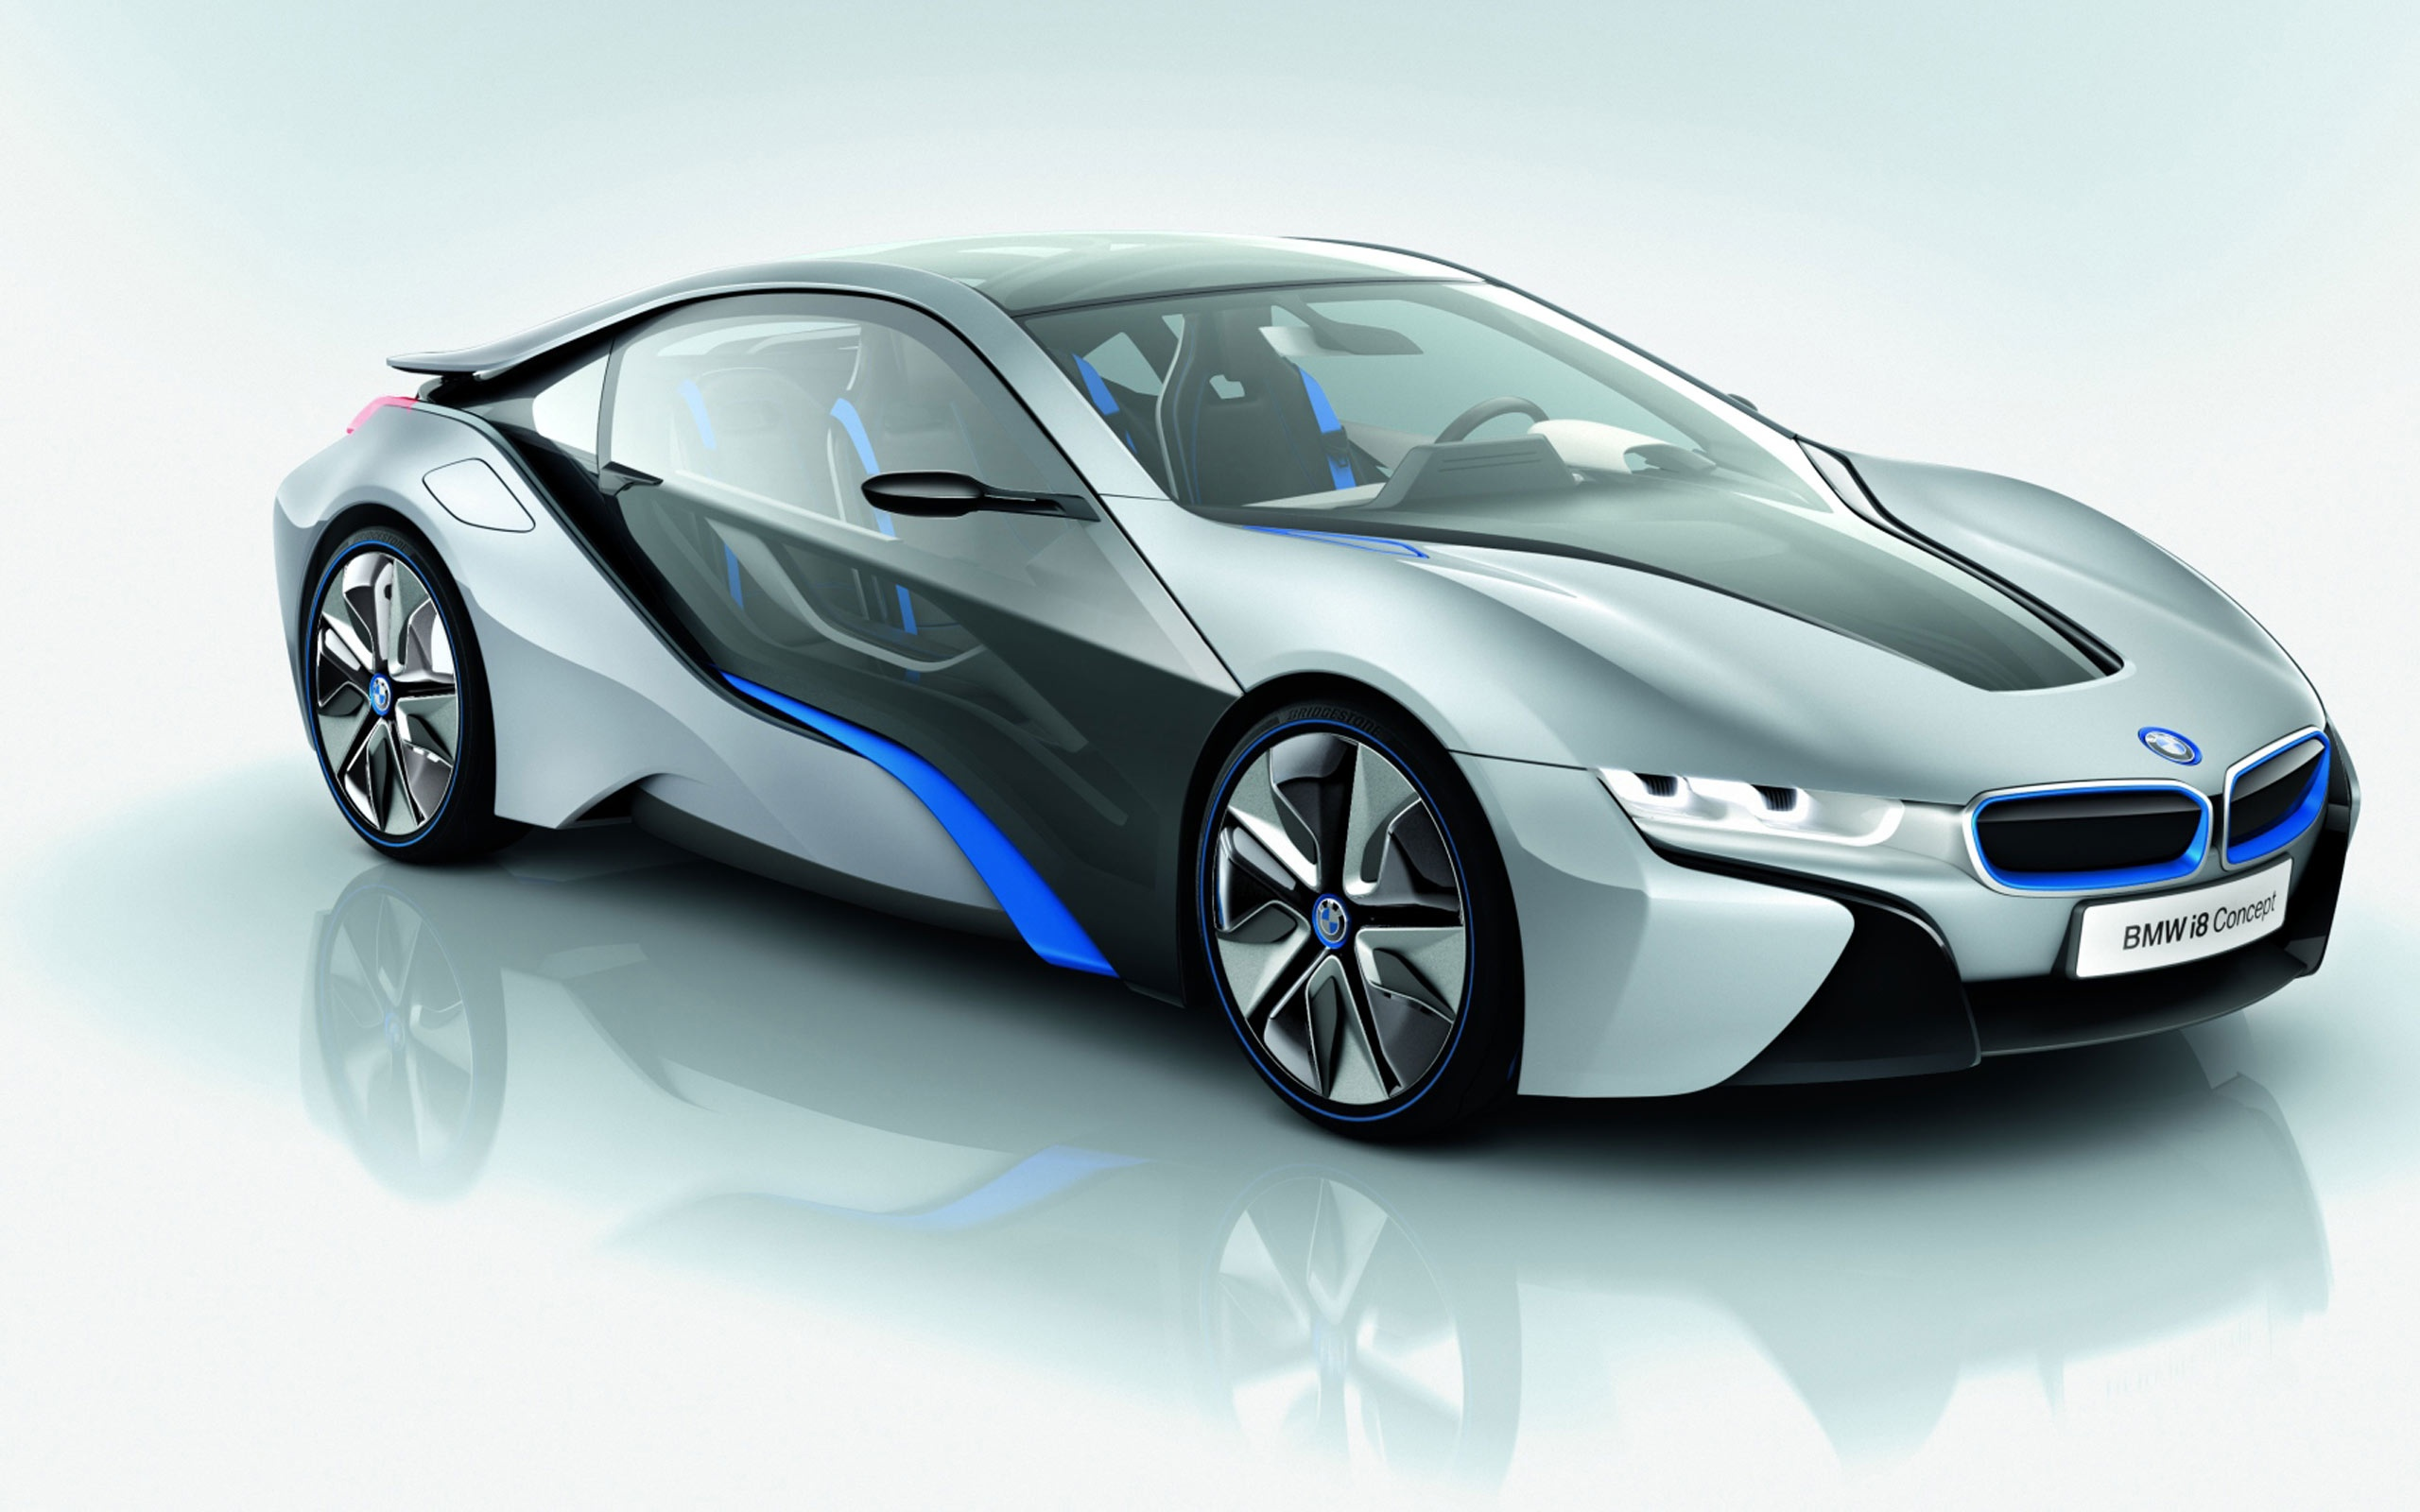 Wallpaper Bmw I8 Concept Car 2560x1600 Hd Picture Image